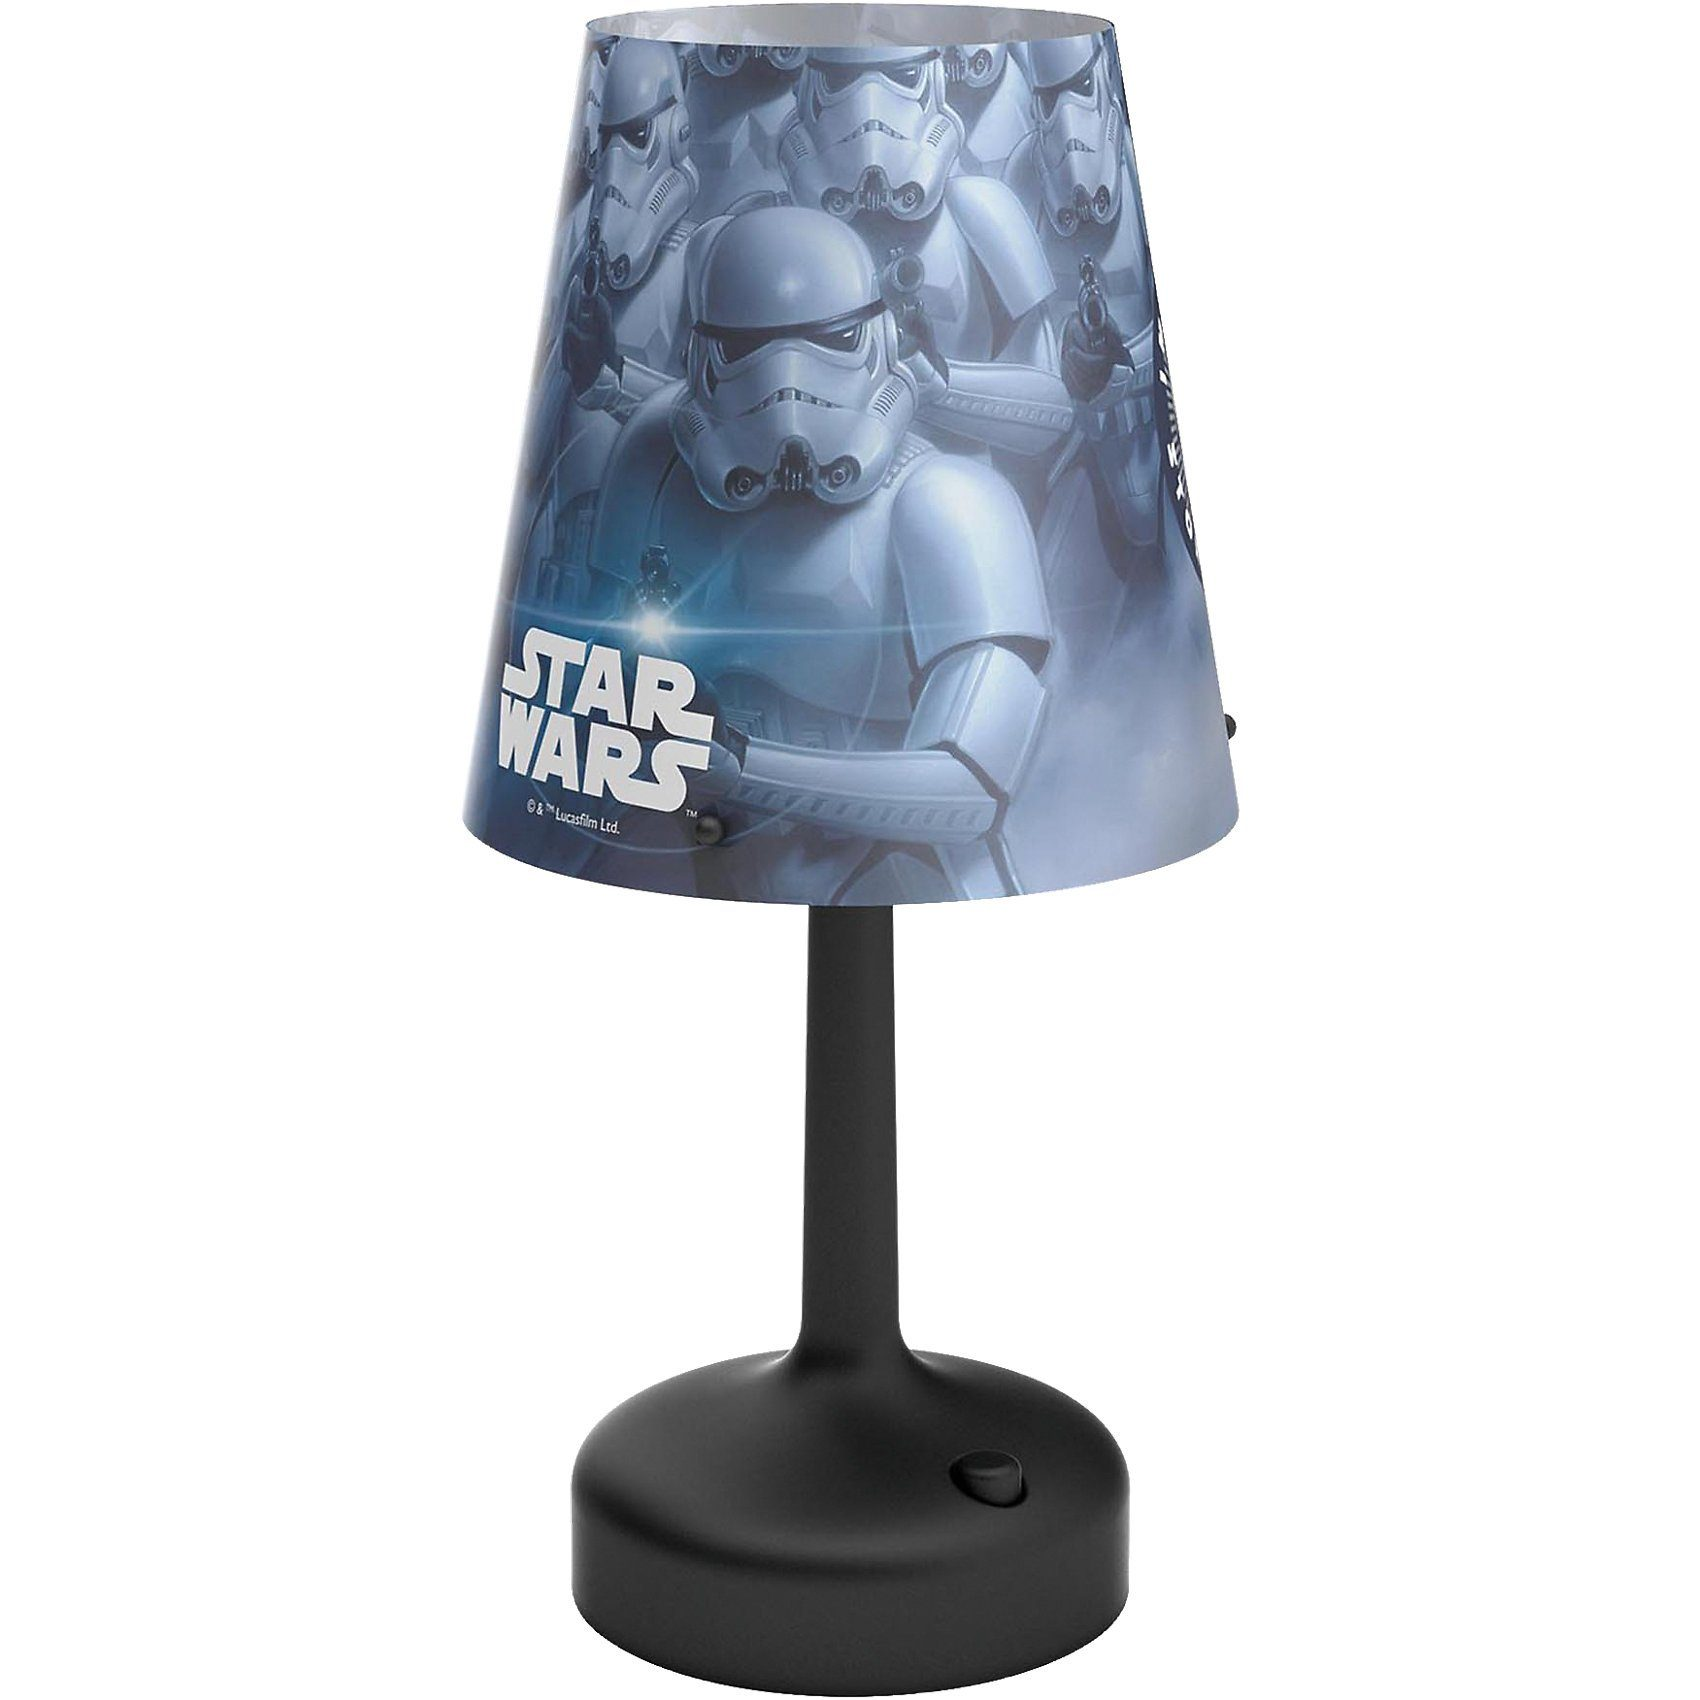 Philips Lighting Tragbare LED Nacht-/Tischleuchte Star Wars Stormtroopers